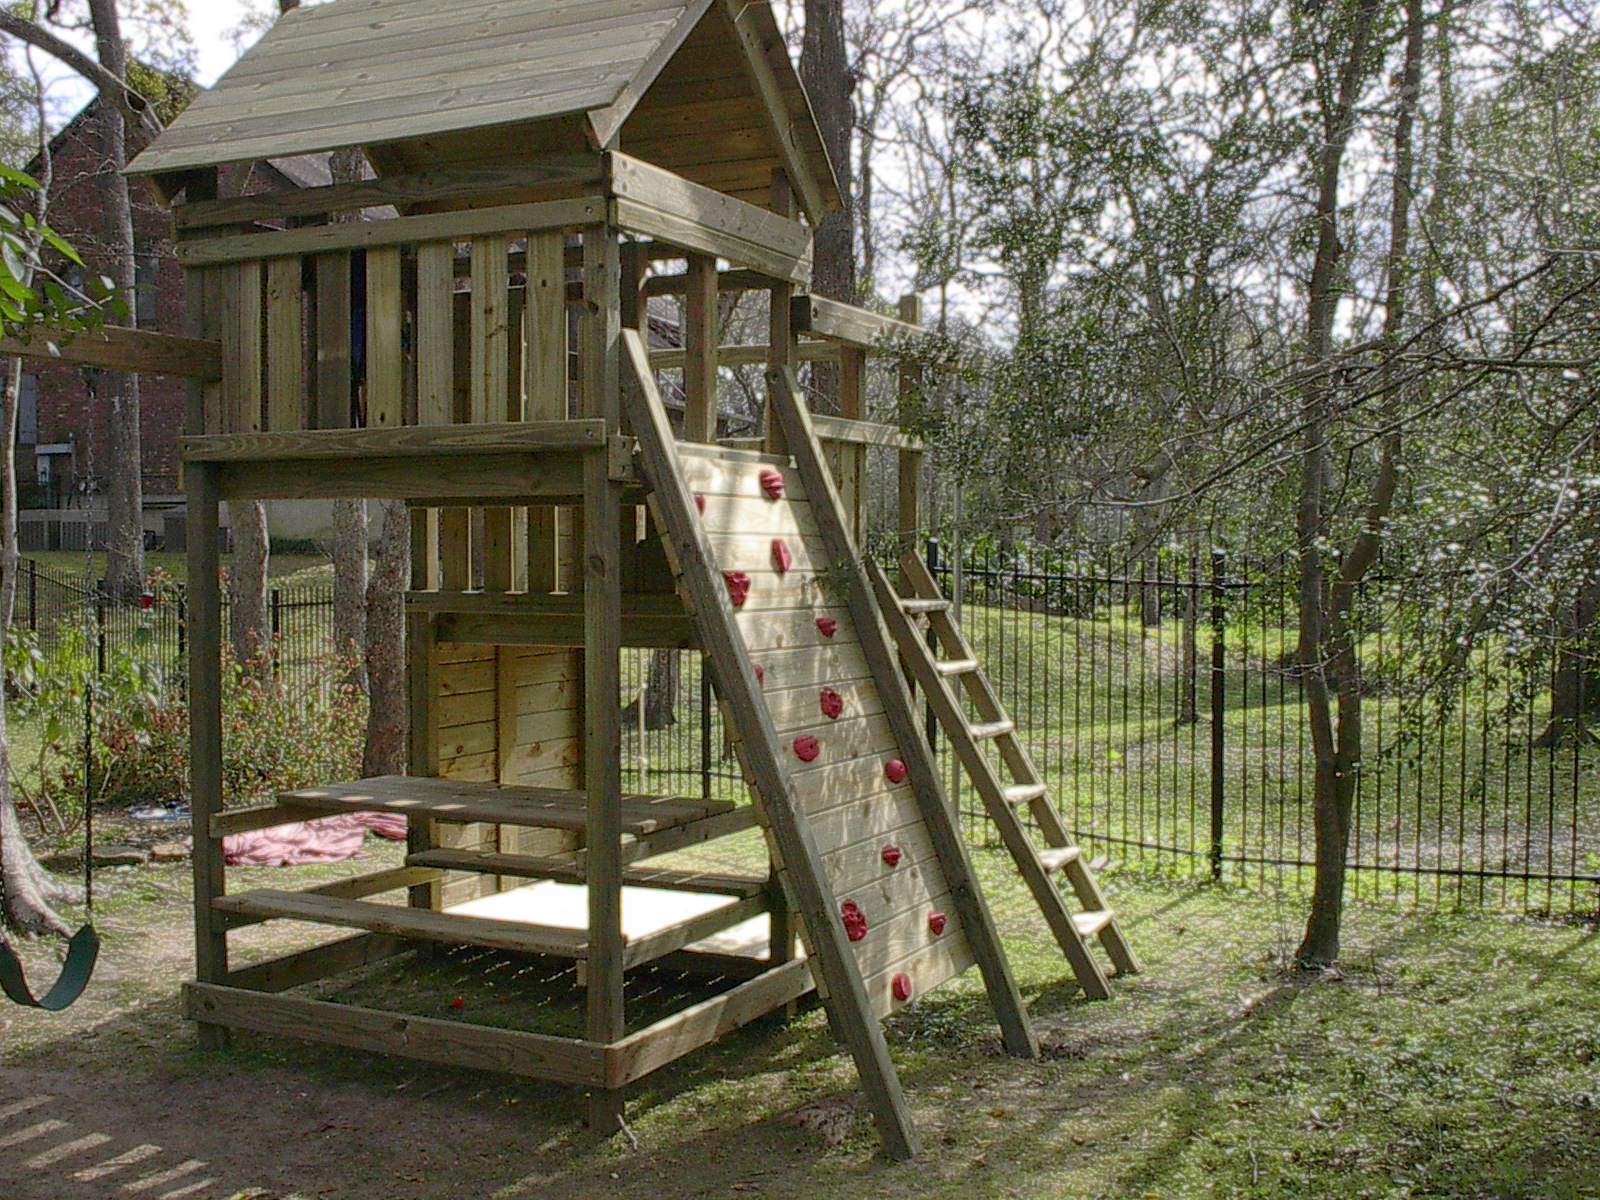 Gemini Playset DIY Wood Fort and Swingset Plans on homemade mailbox plans, homemade clubhouse plans, homemade playground set, homemade swinging doors, homemade tire swing plans, homemade car plans, homemade arbor plans, homemade storage plans, homemade kitchen plans, homemade tools plans, homemade motorcycle plans, homemade wooden beds, homemade playground plans, homemade wagon plans, homemade sandbox plans, wooden swing plans, homemade desk plans, homemade freezer plans, homemade shelf plans, homemade wooden swings,